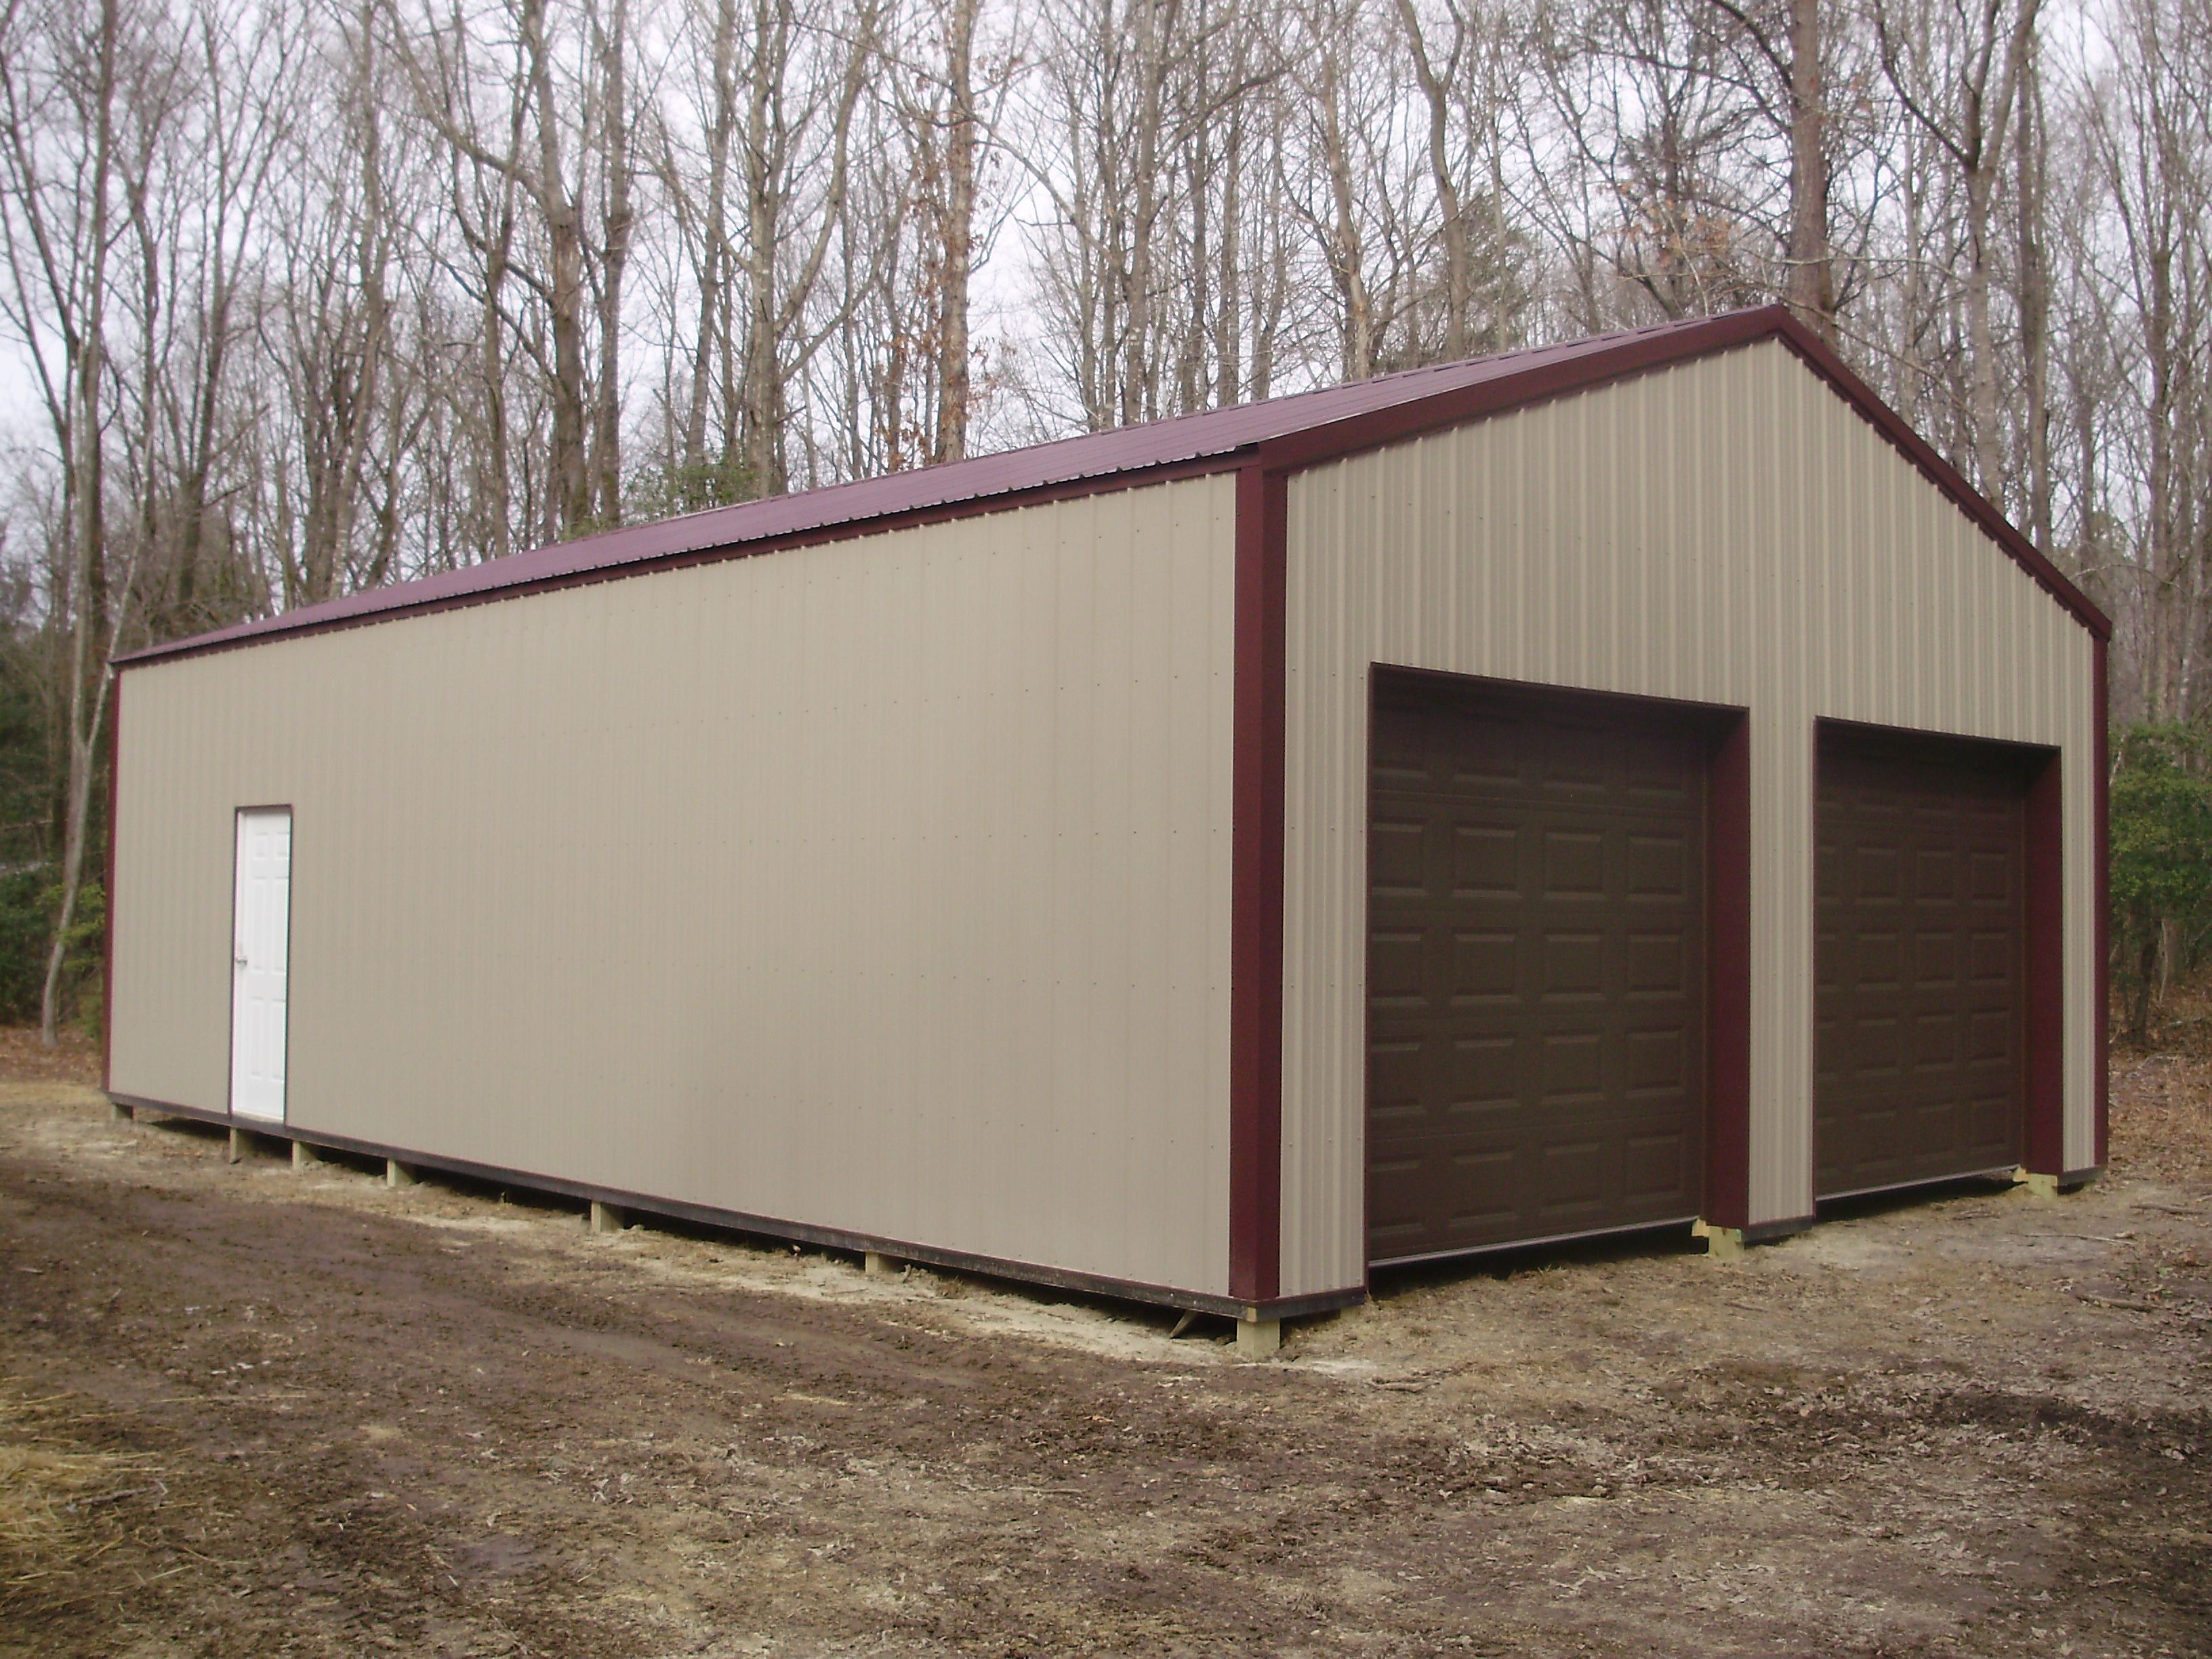 24 W X 40 L X 10 4 H Pioneer Pole Buildings Garage With Brown Overhead Doors Pole Building Garage Garage Door Design Pole Buildings